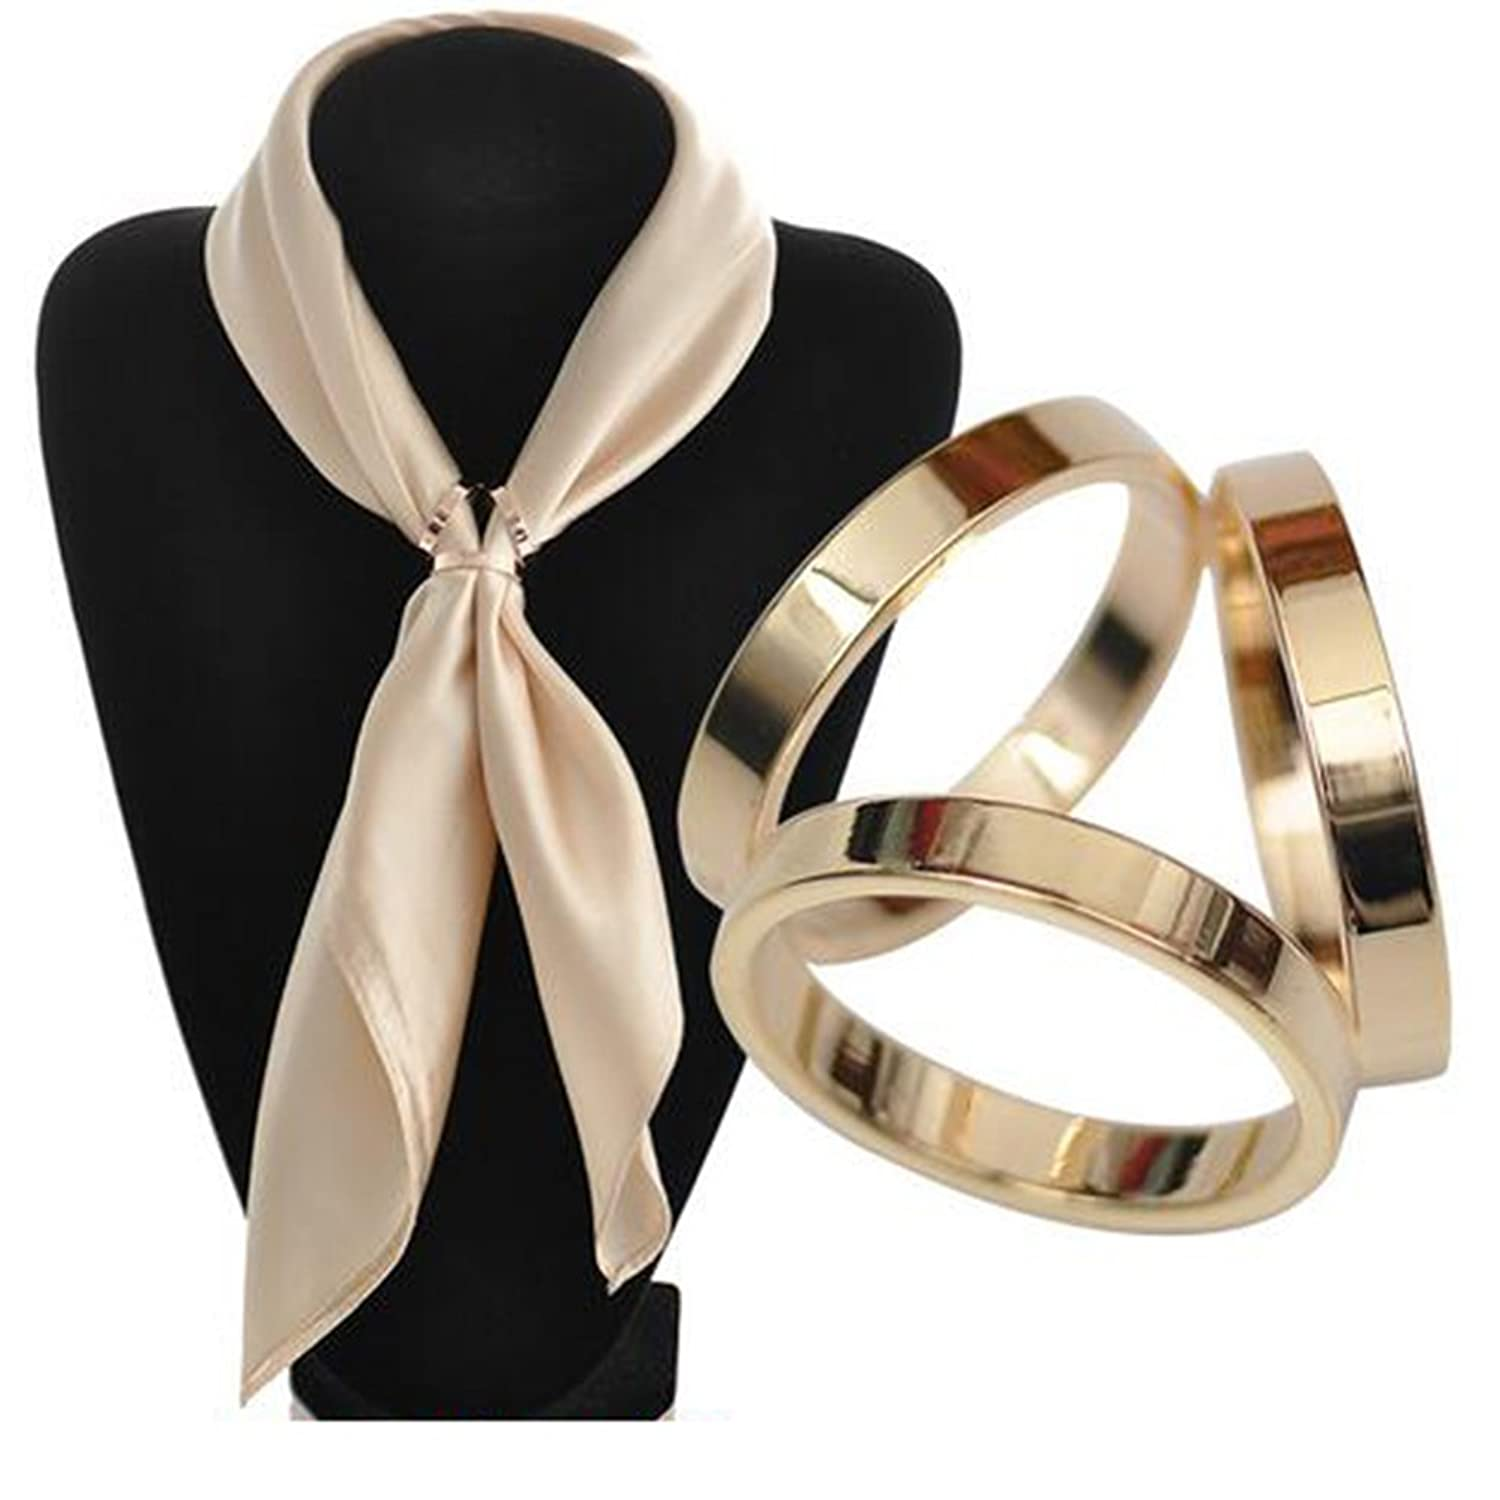 pointe scarf collections of scarves library and clips virtual sandi rings